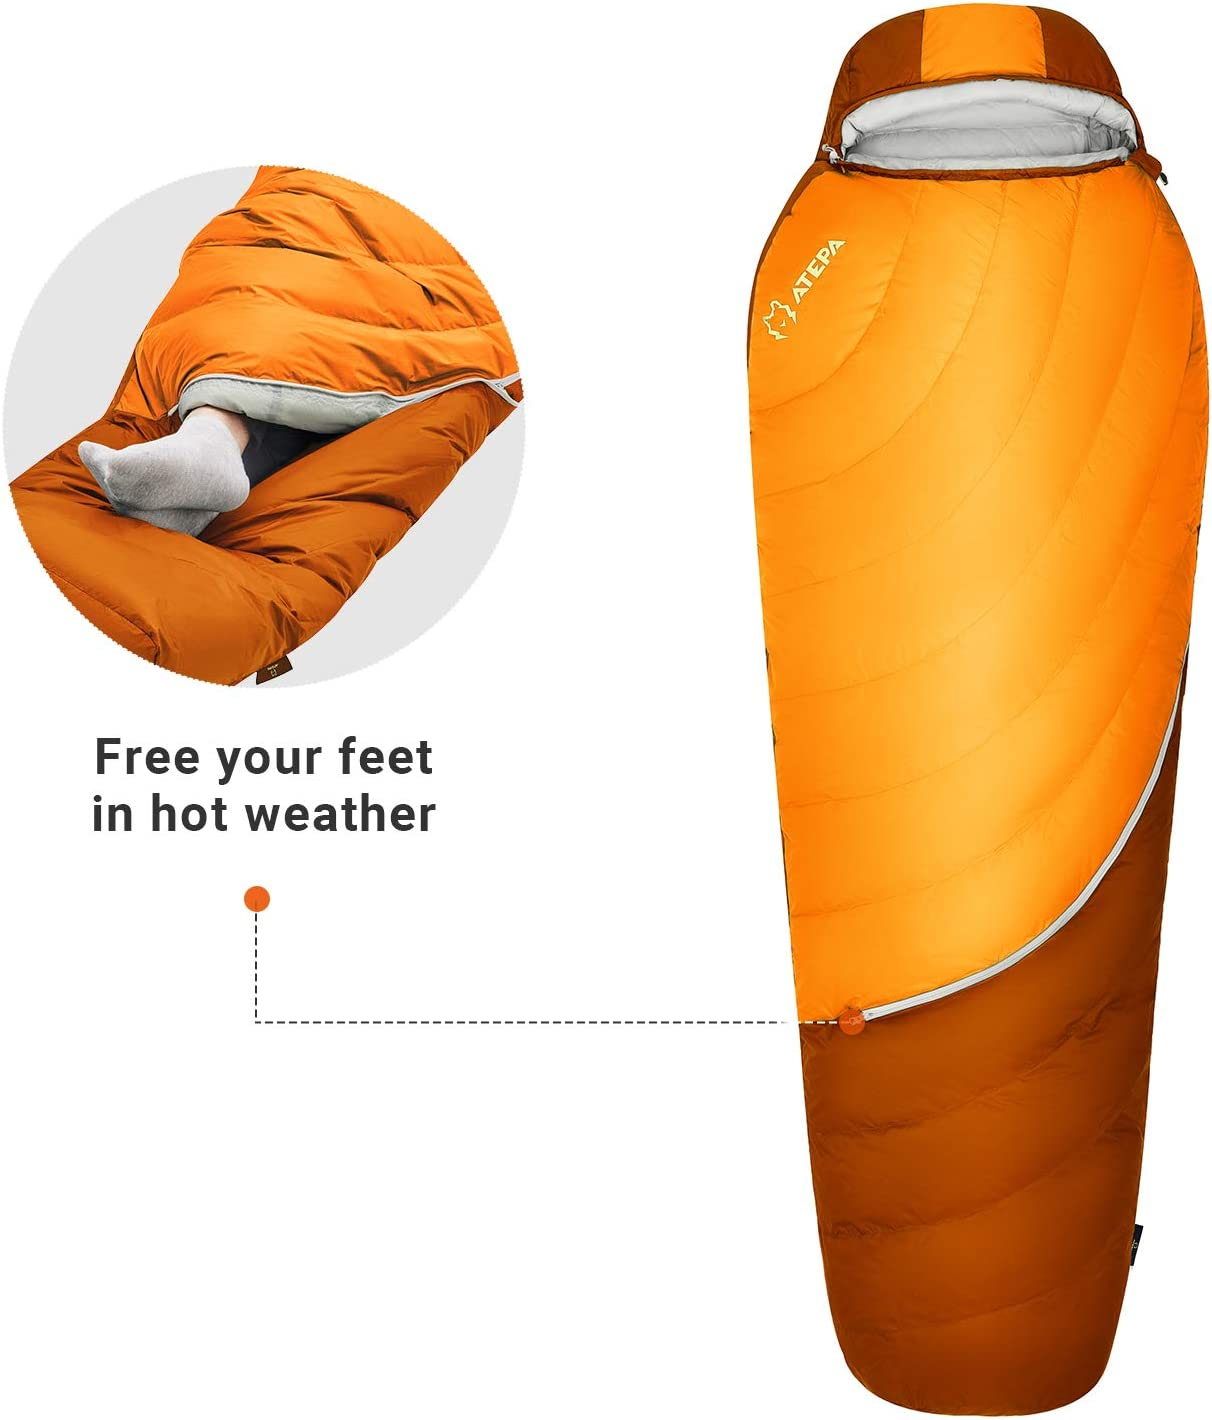 ATEPA 0 Degree Down Sleeping Bag 650 FP Cold Weather Lightweight Backpacking 4 Season Waterproof Sleeping Bag with Compression Bag /& Mesh Storage for Adult Women,Youth XL /& Regular Size Men